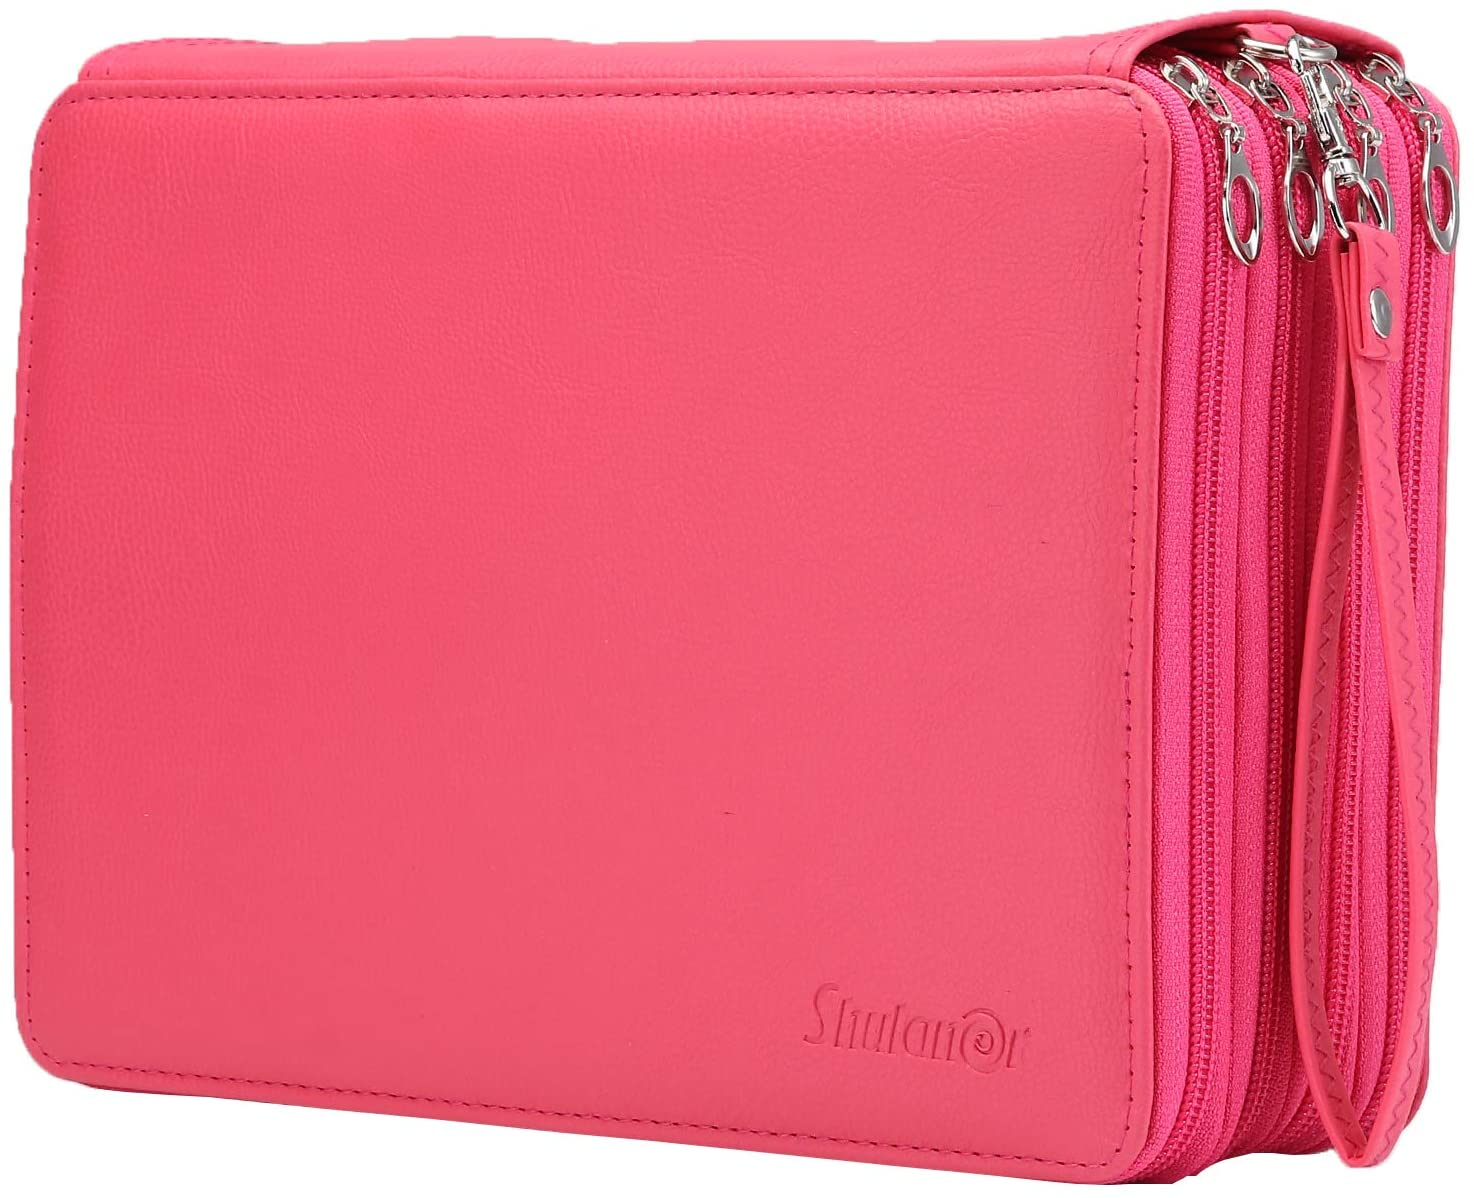 Shulaner 200 Slots Colored Pencil Case Organizer with Zipper PU Leather Large Capacity Pen Holder Bag (Rose Red)